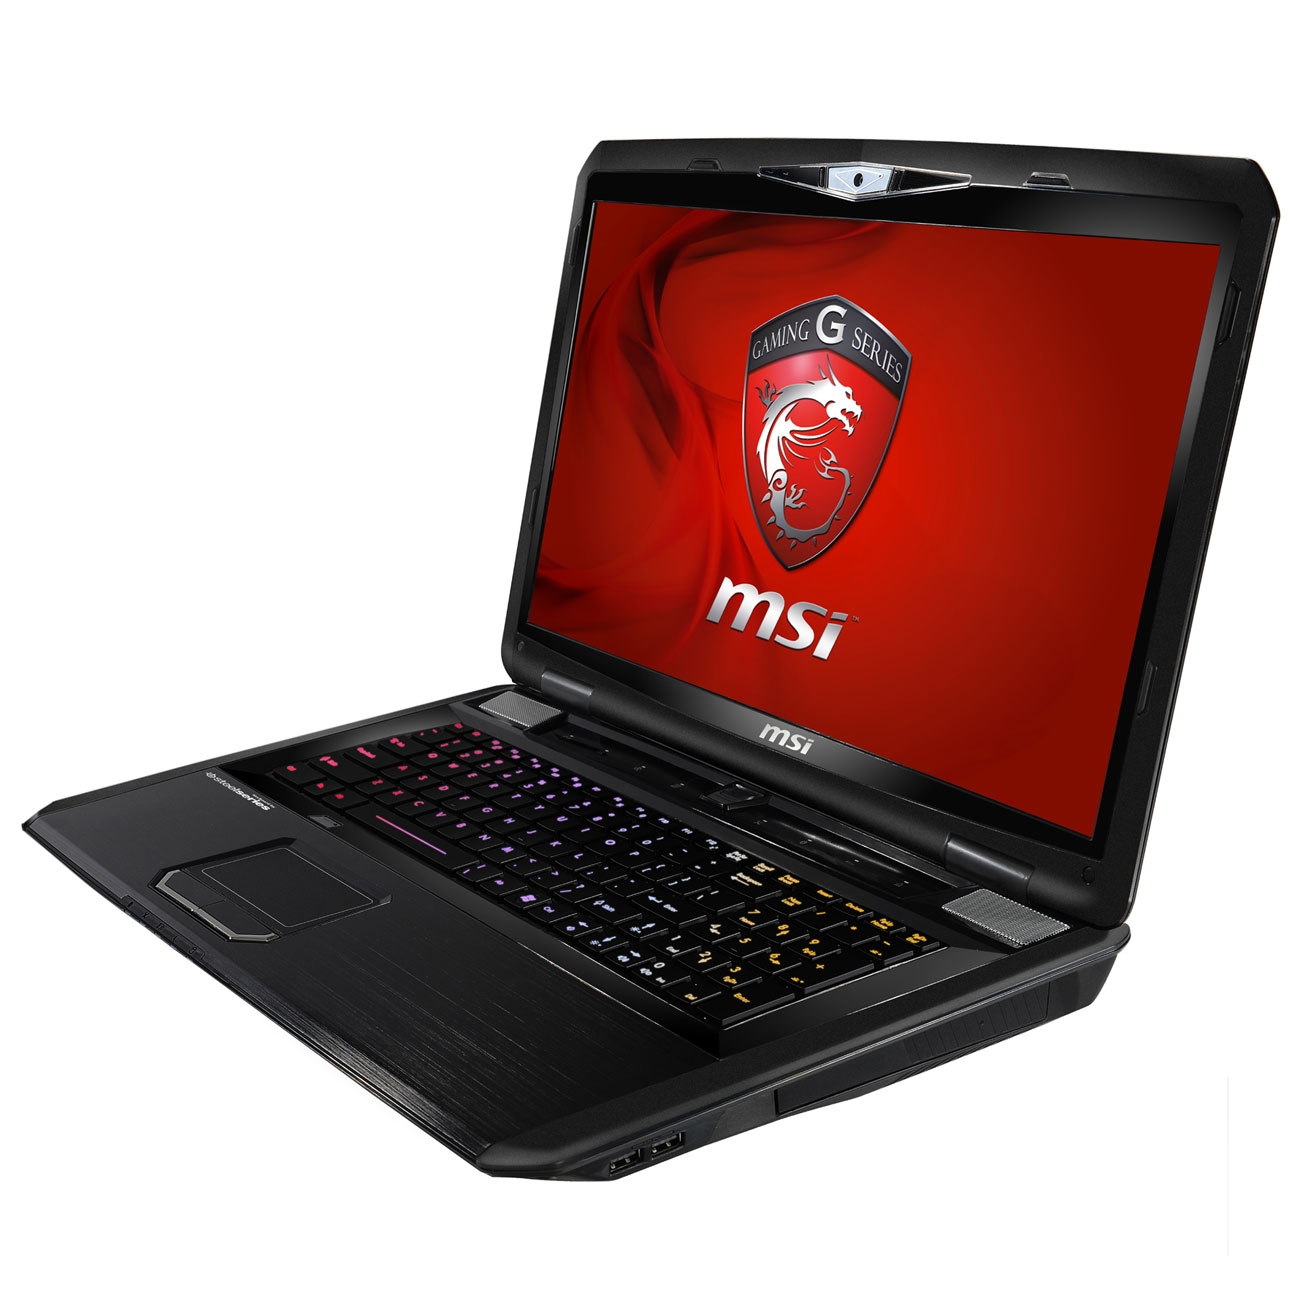 msi gt70 0nd 260fr pc portable msi sur. Black Bedroom Furniture Sets. Home Design Ideas